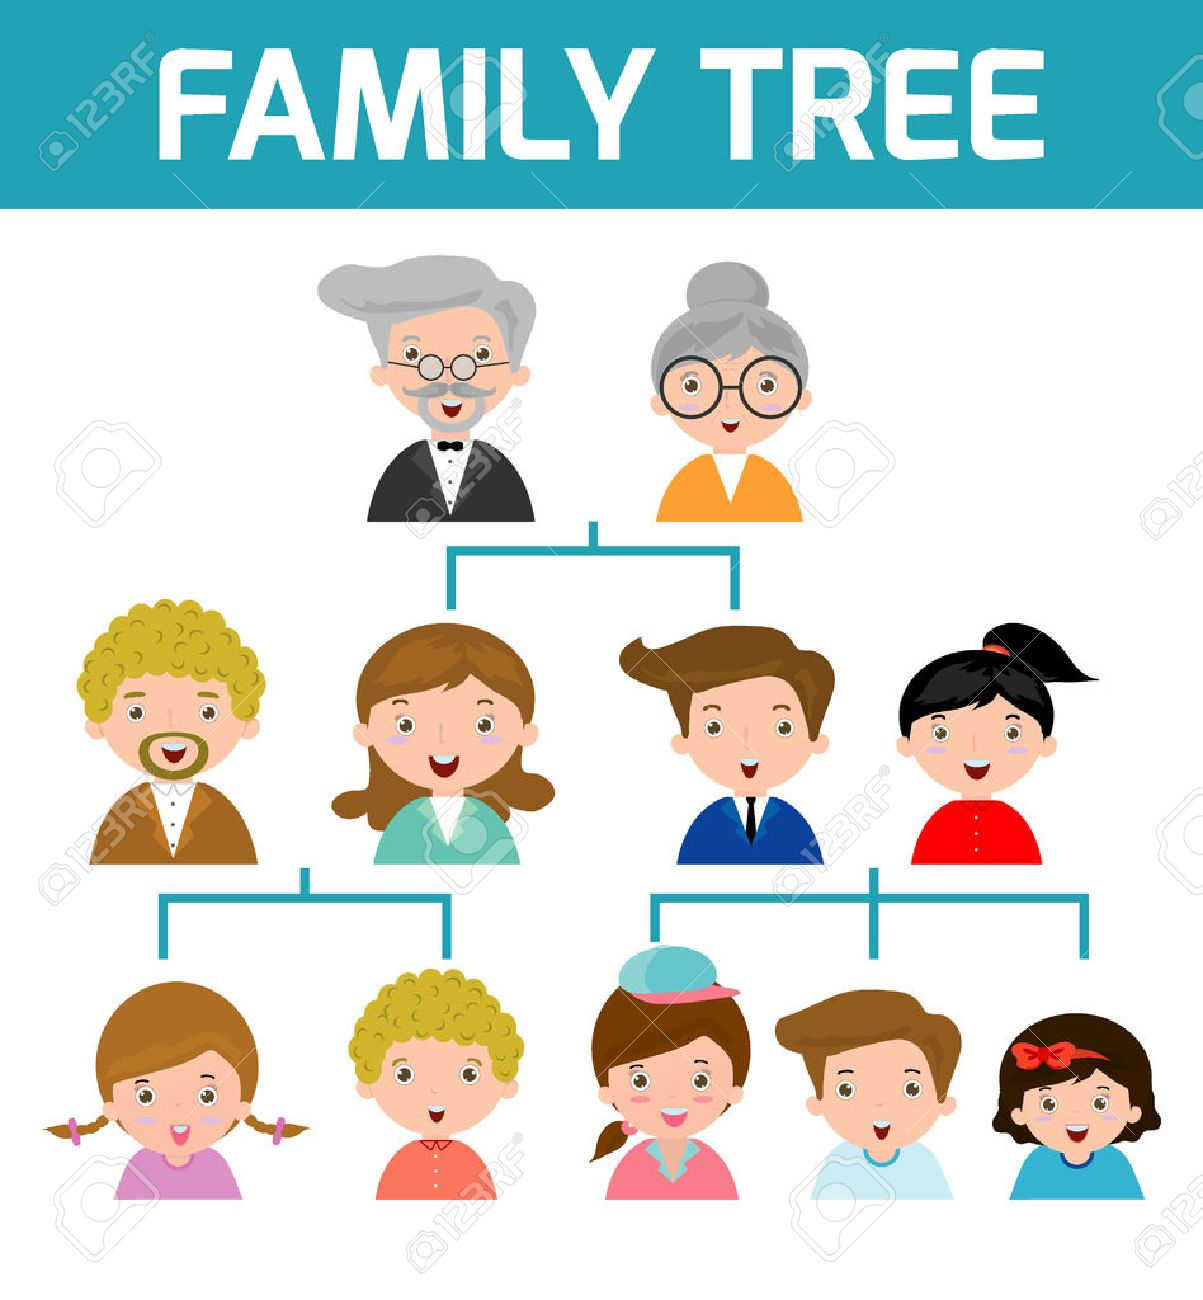 Family tree diagram of members on a genealogical tree isolated family tree diagram of members on a genealogical tree isolated on white background ccuart Images